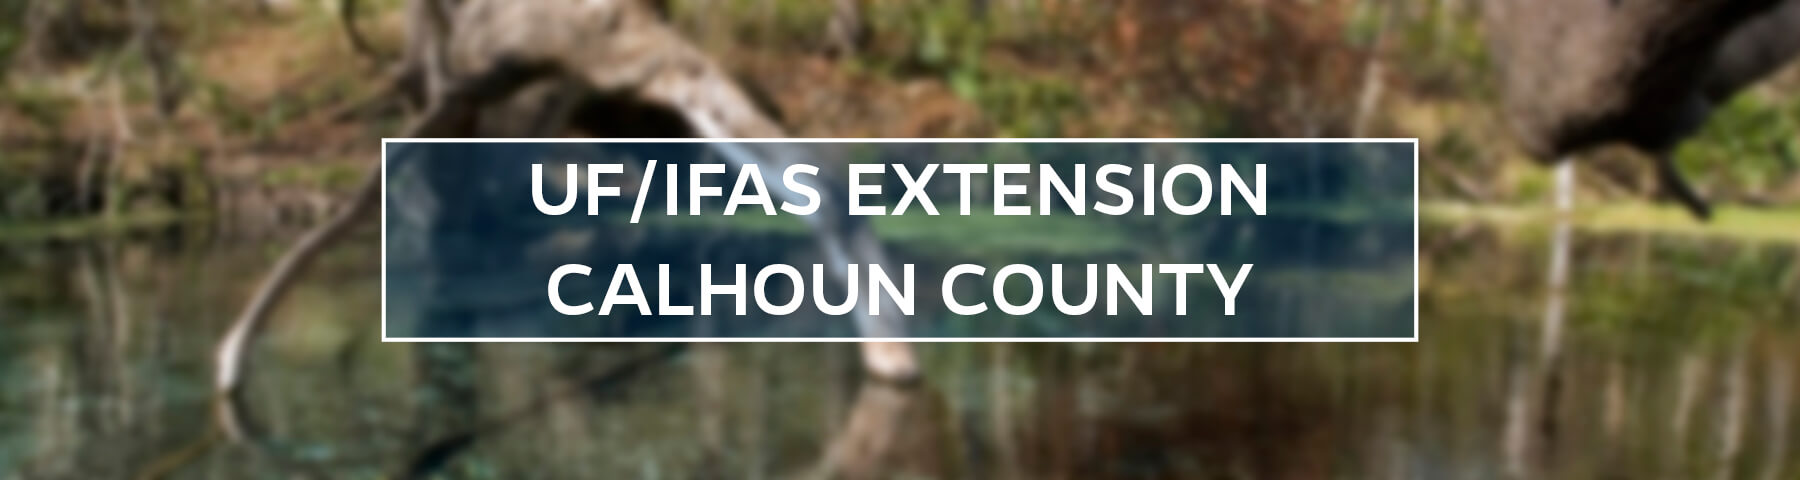 UF/IFAS Extension Calhoun County